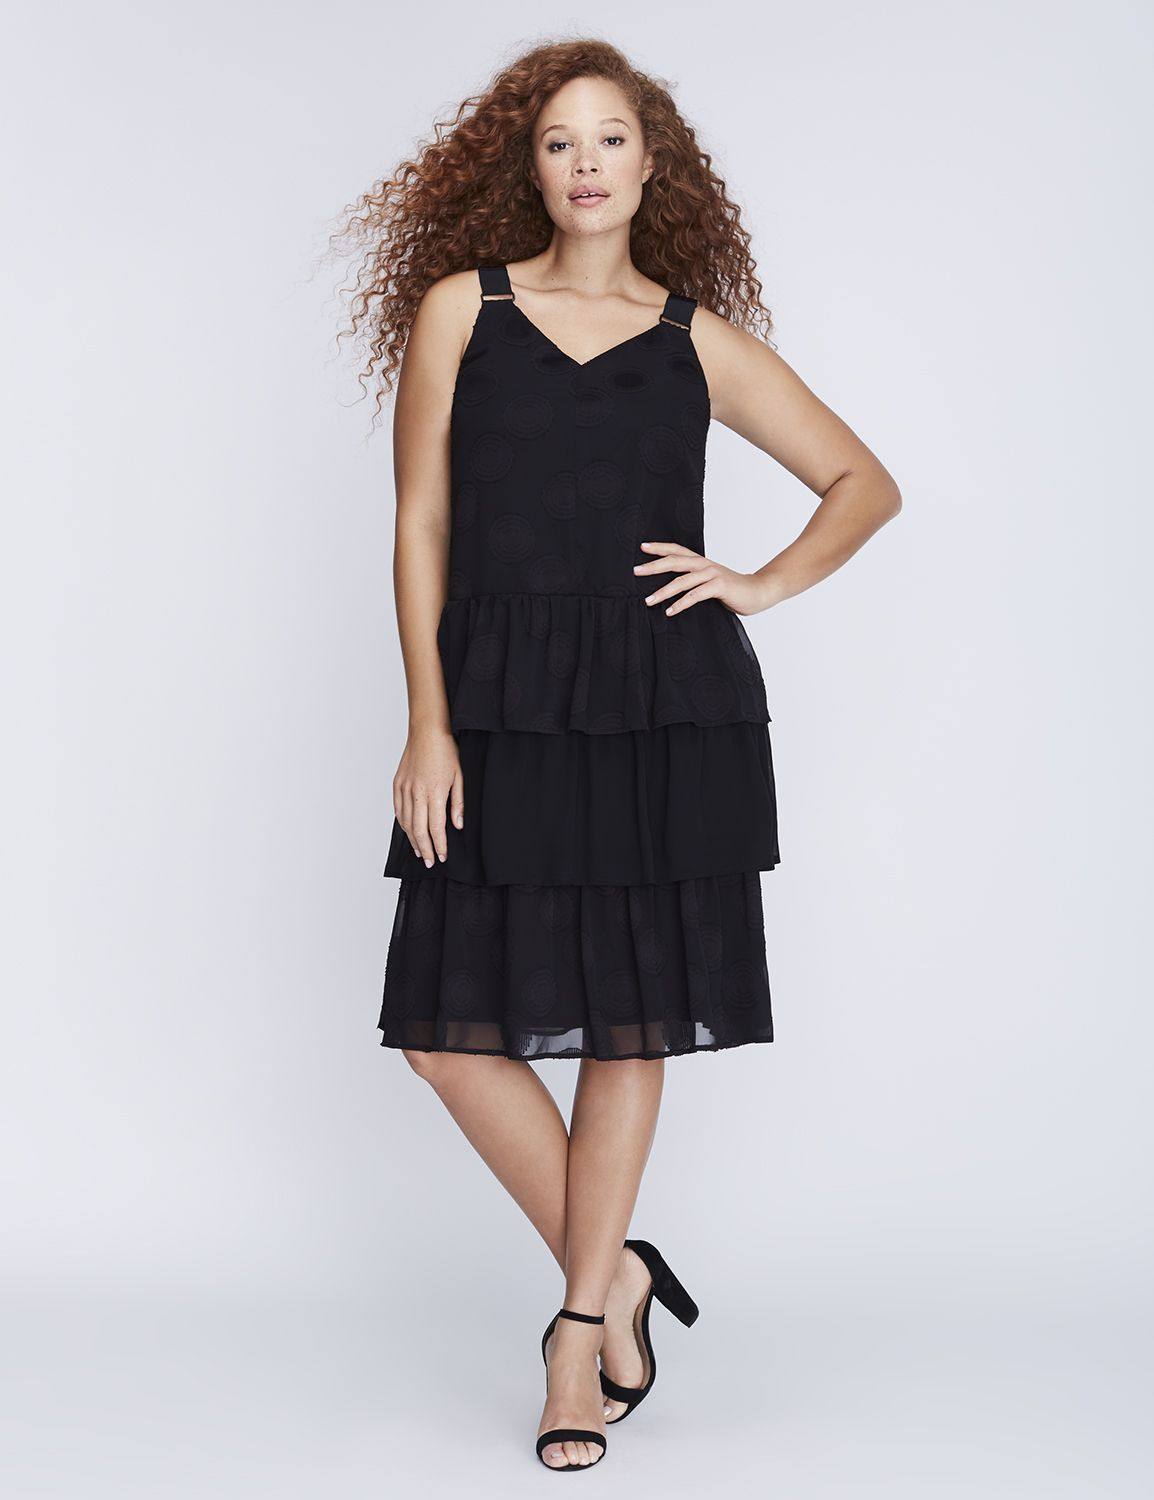 Lane bryant long black dress